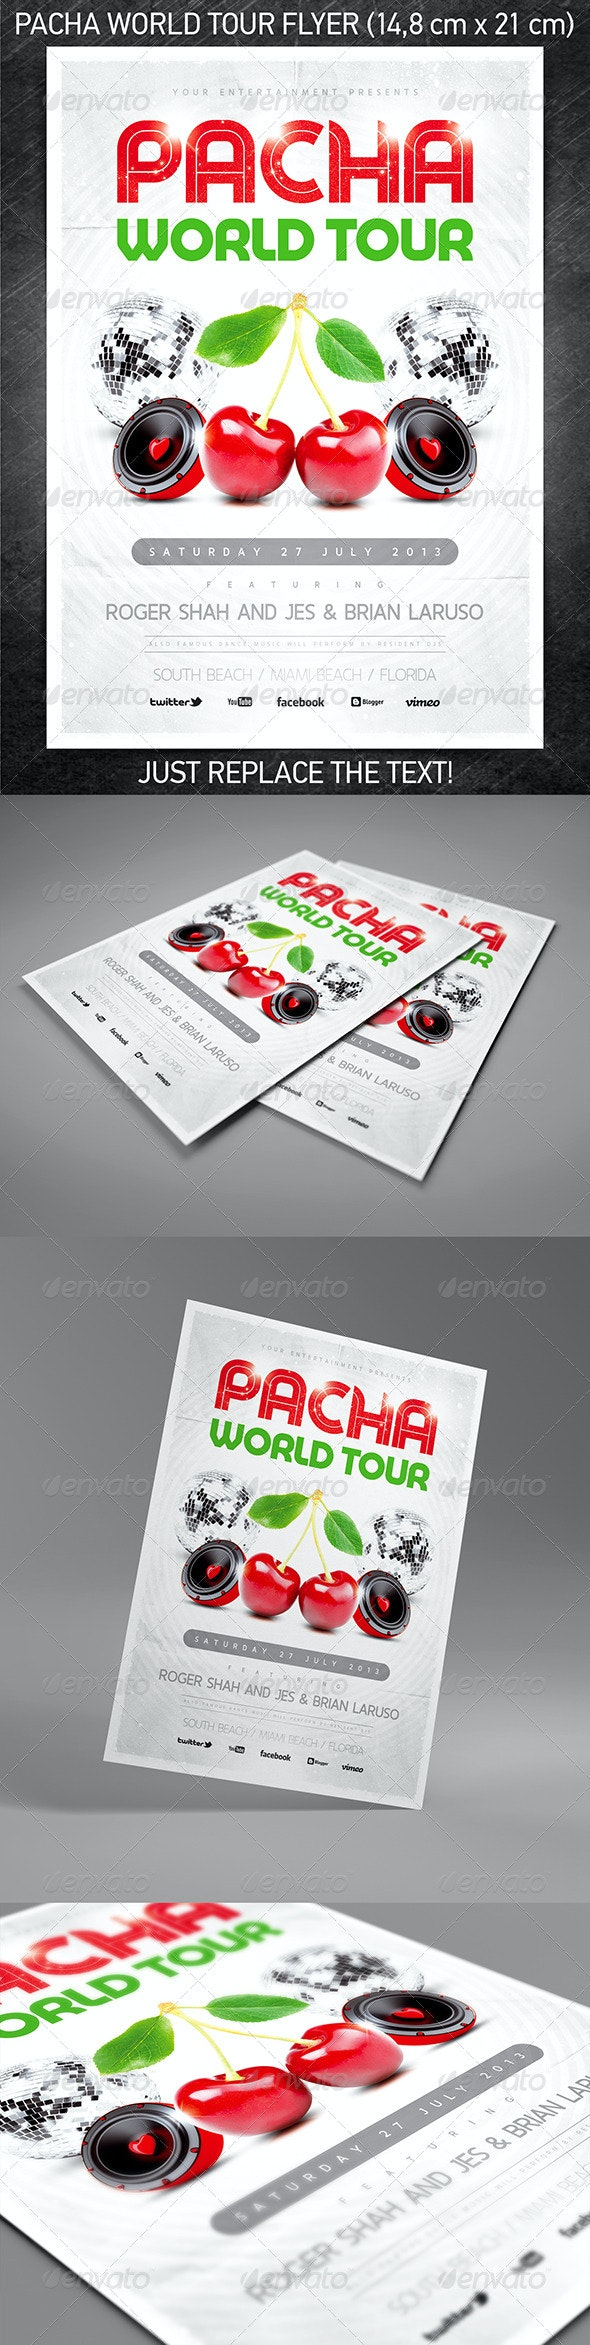 Pacha World Tour Party Flyer - Clubs & Parties Events